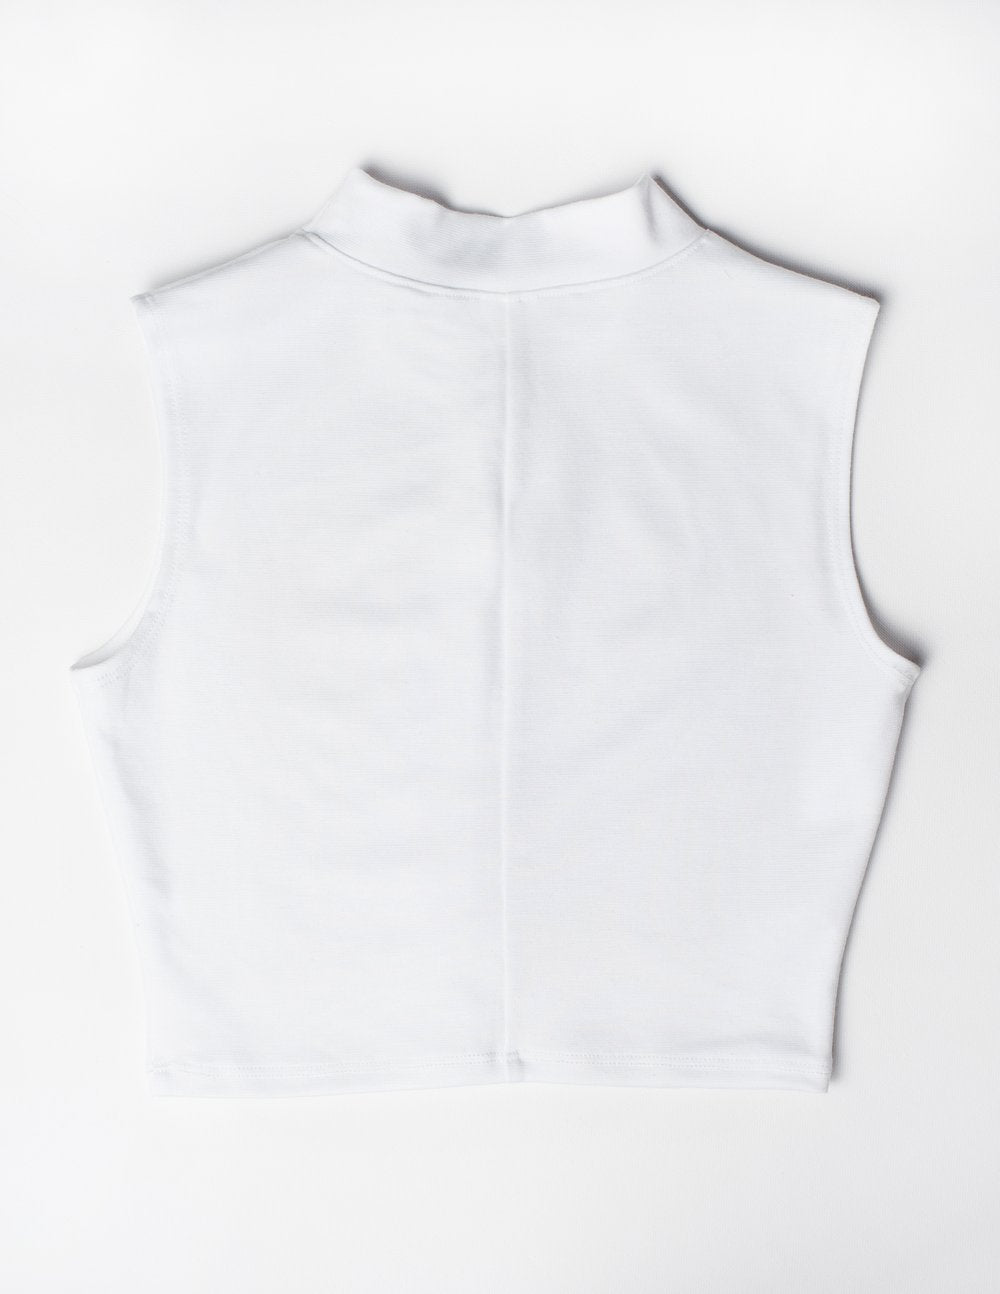 Romeo Top - SHOPNECESSARY6.0